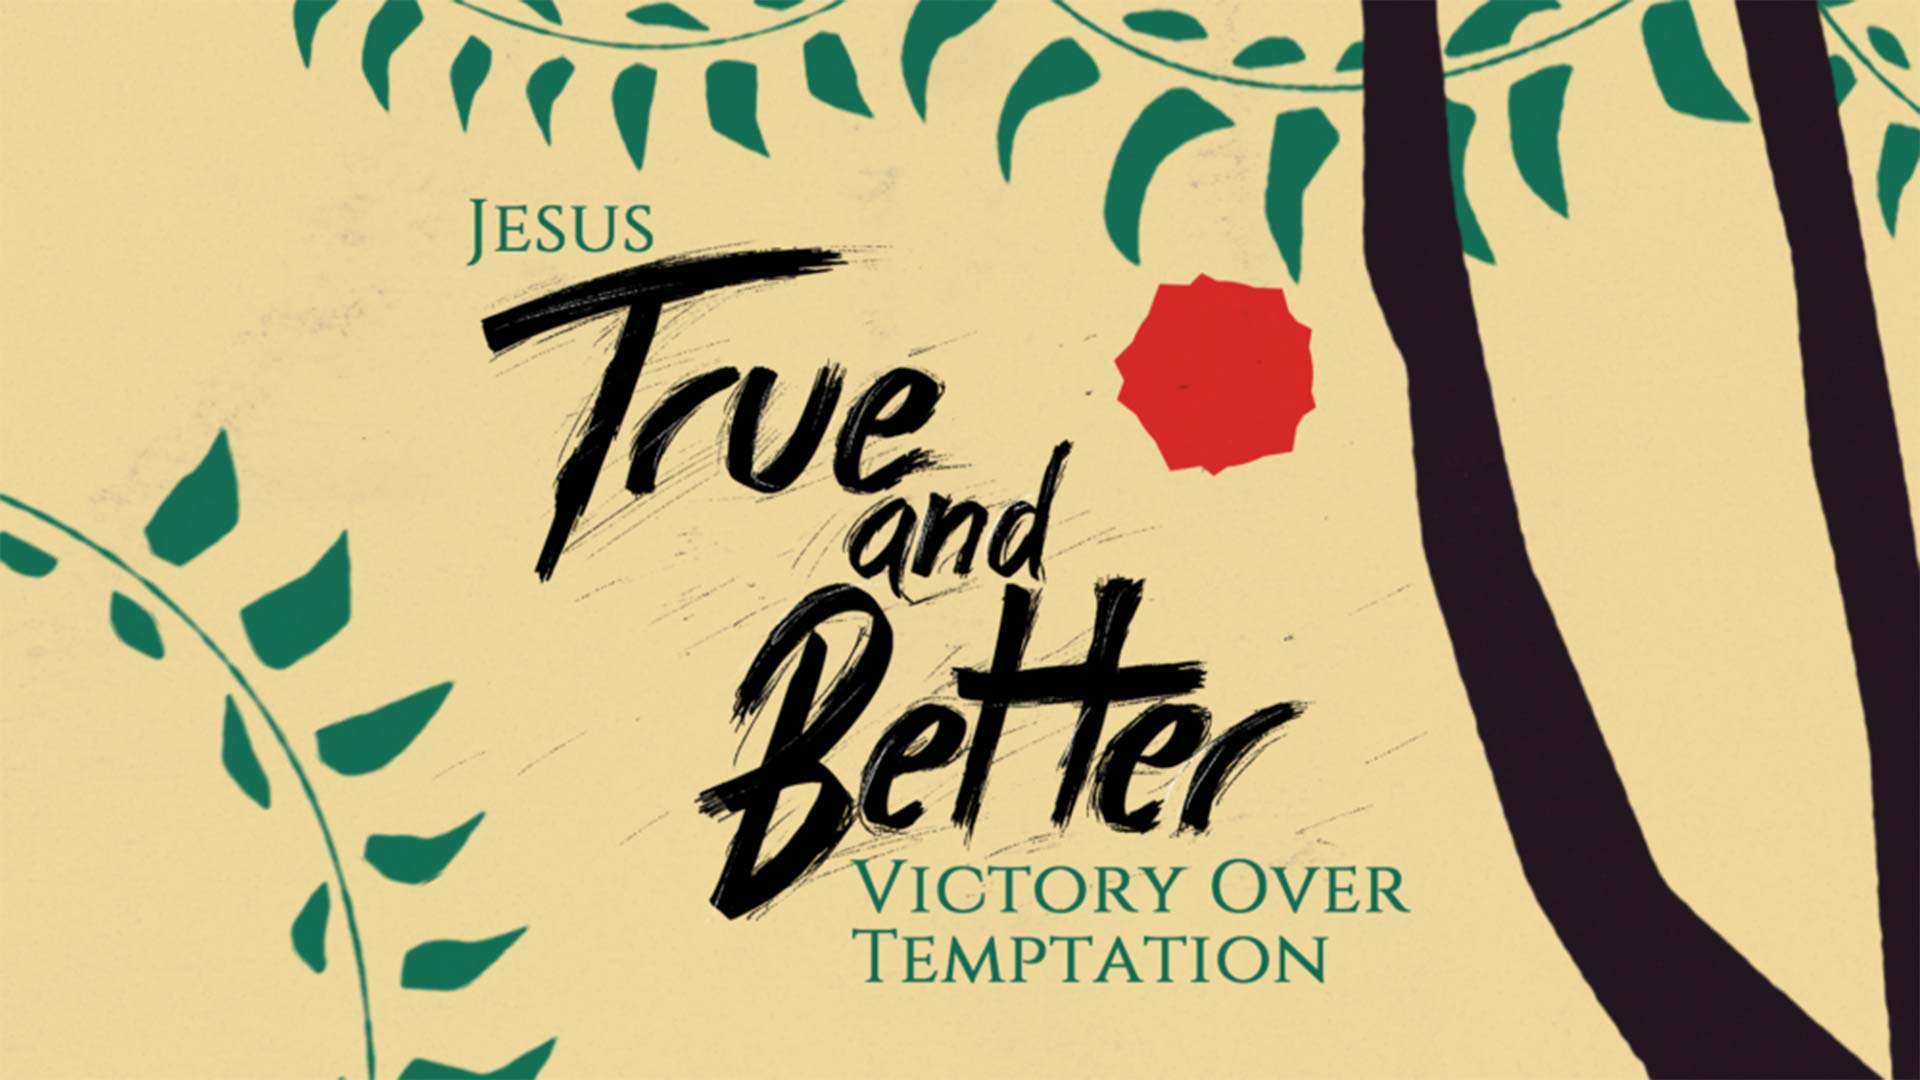 Jesus: True and Better Victory over Temptation Image